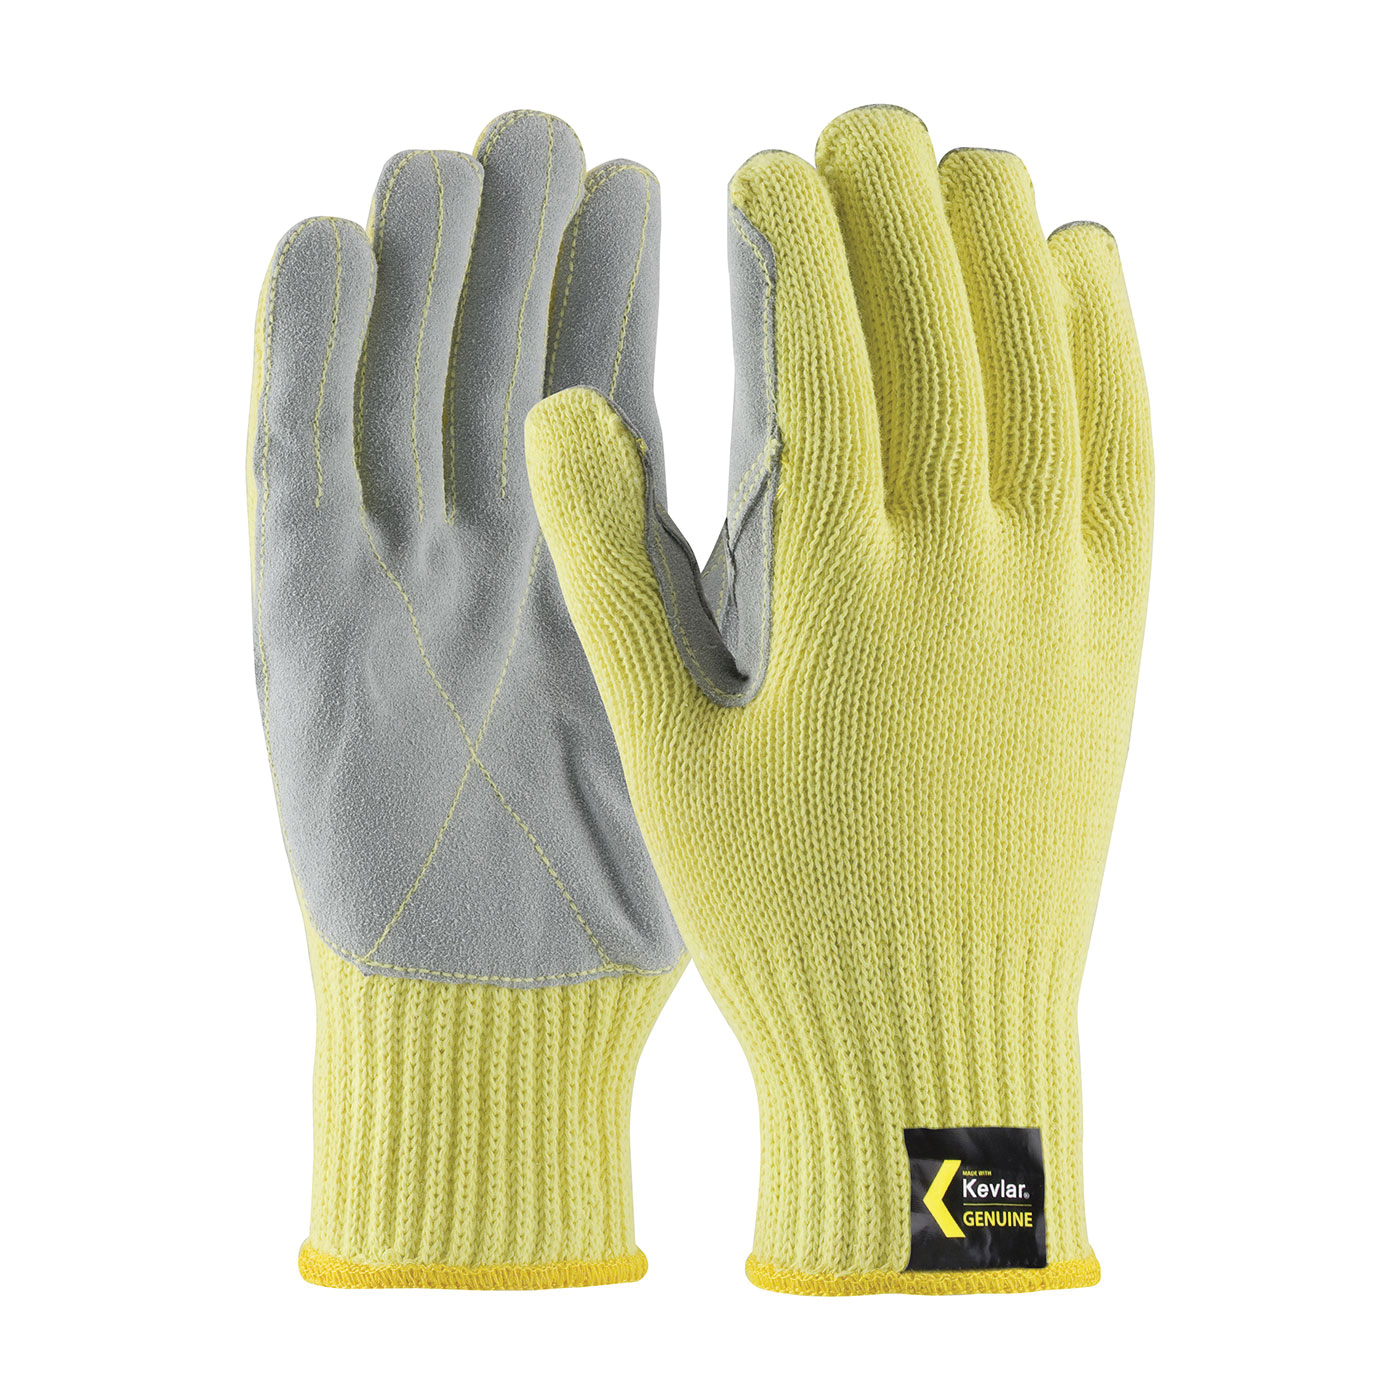 G-Tek® GP™ 34-C229/L General Purpose Gloves, Coated, L, Nitrile Palm, Nylon, Blue/White, Continuous Knit Wrist Cuff, Nitrile Coating, Resists: Abrasion, Cut and Puncture, Nylon Lining, Seamless Knit